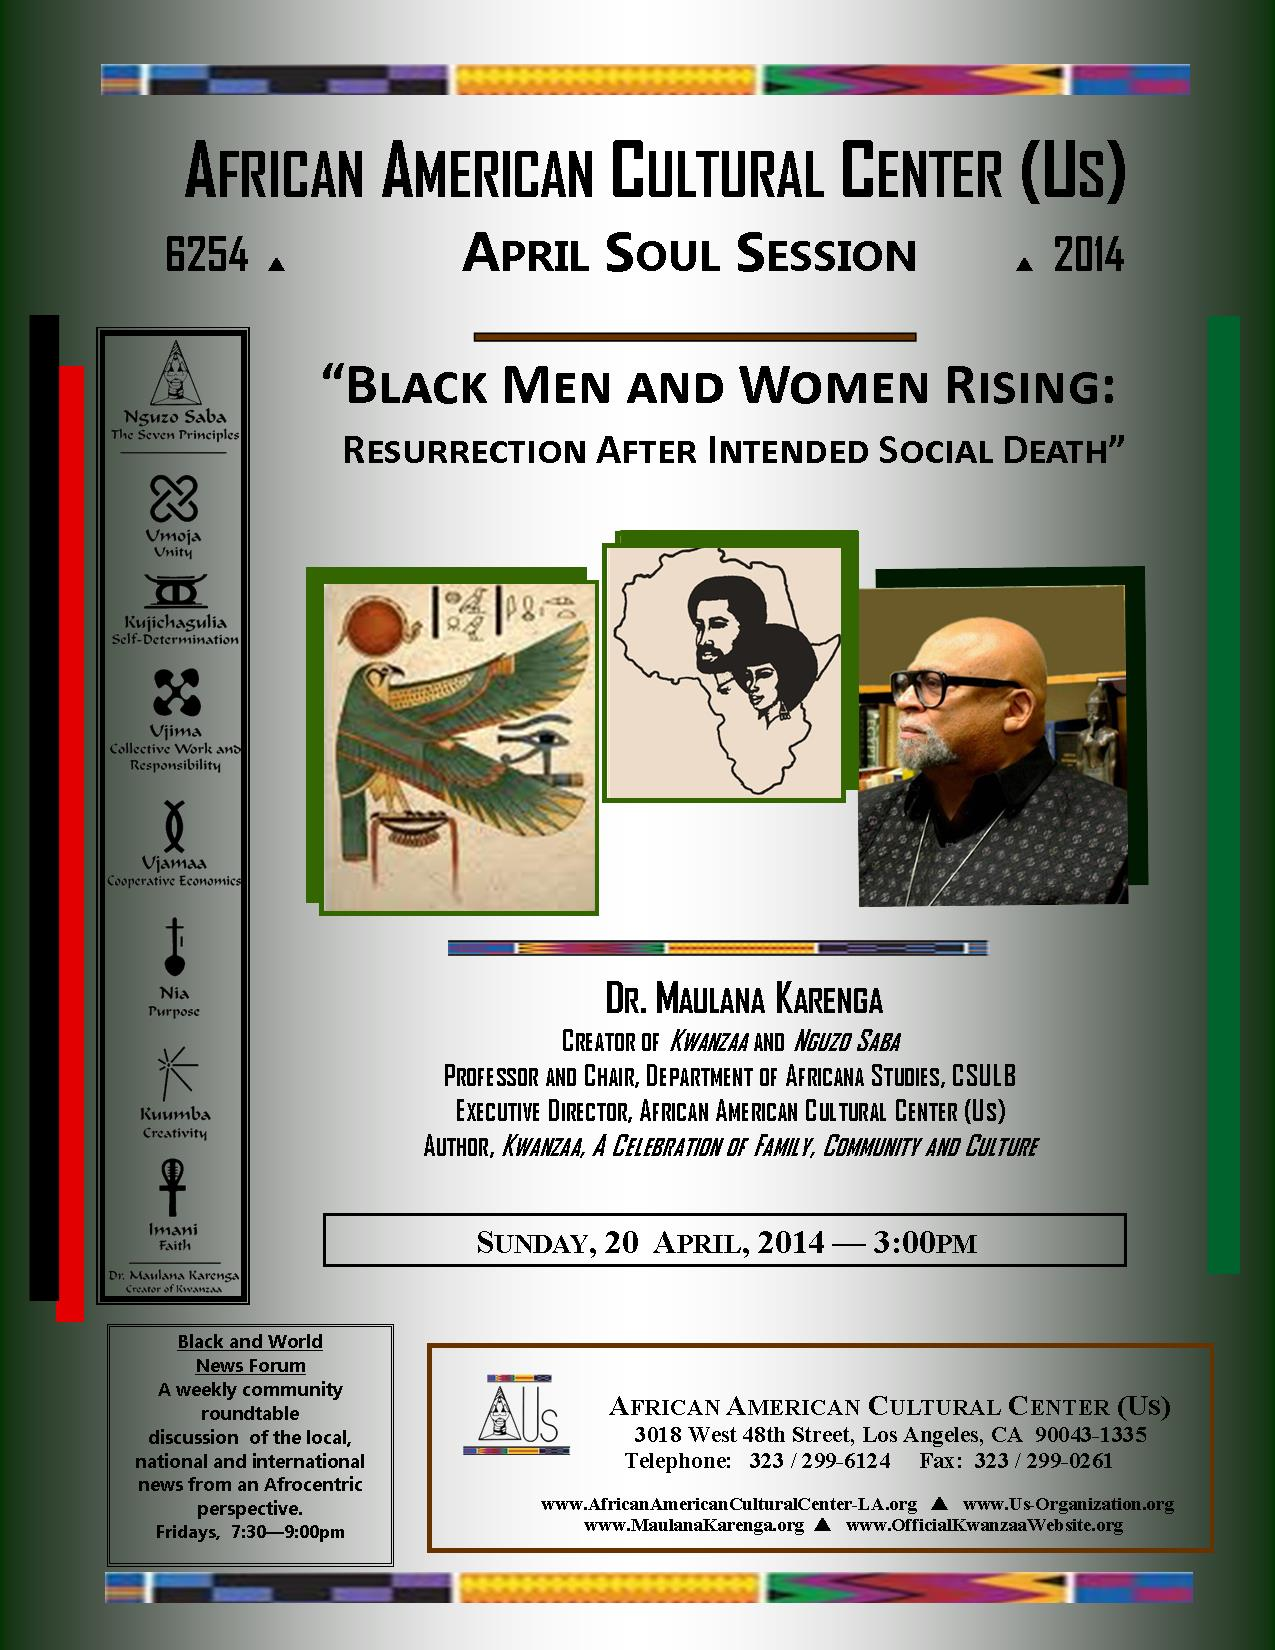 04-20-14 Dr. Maulana Karenga--Black Man and Woman Rising